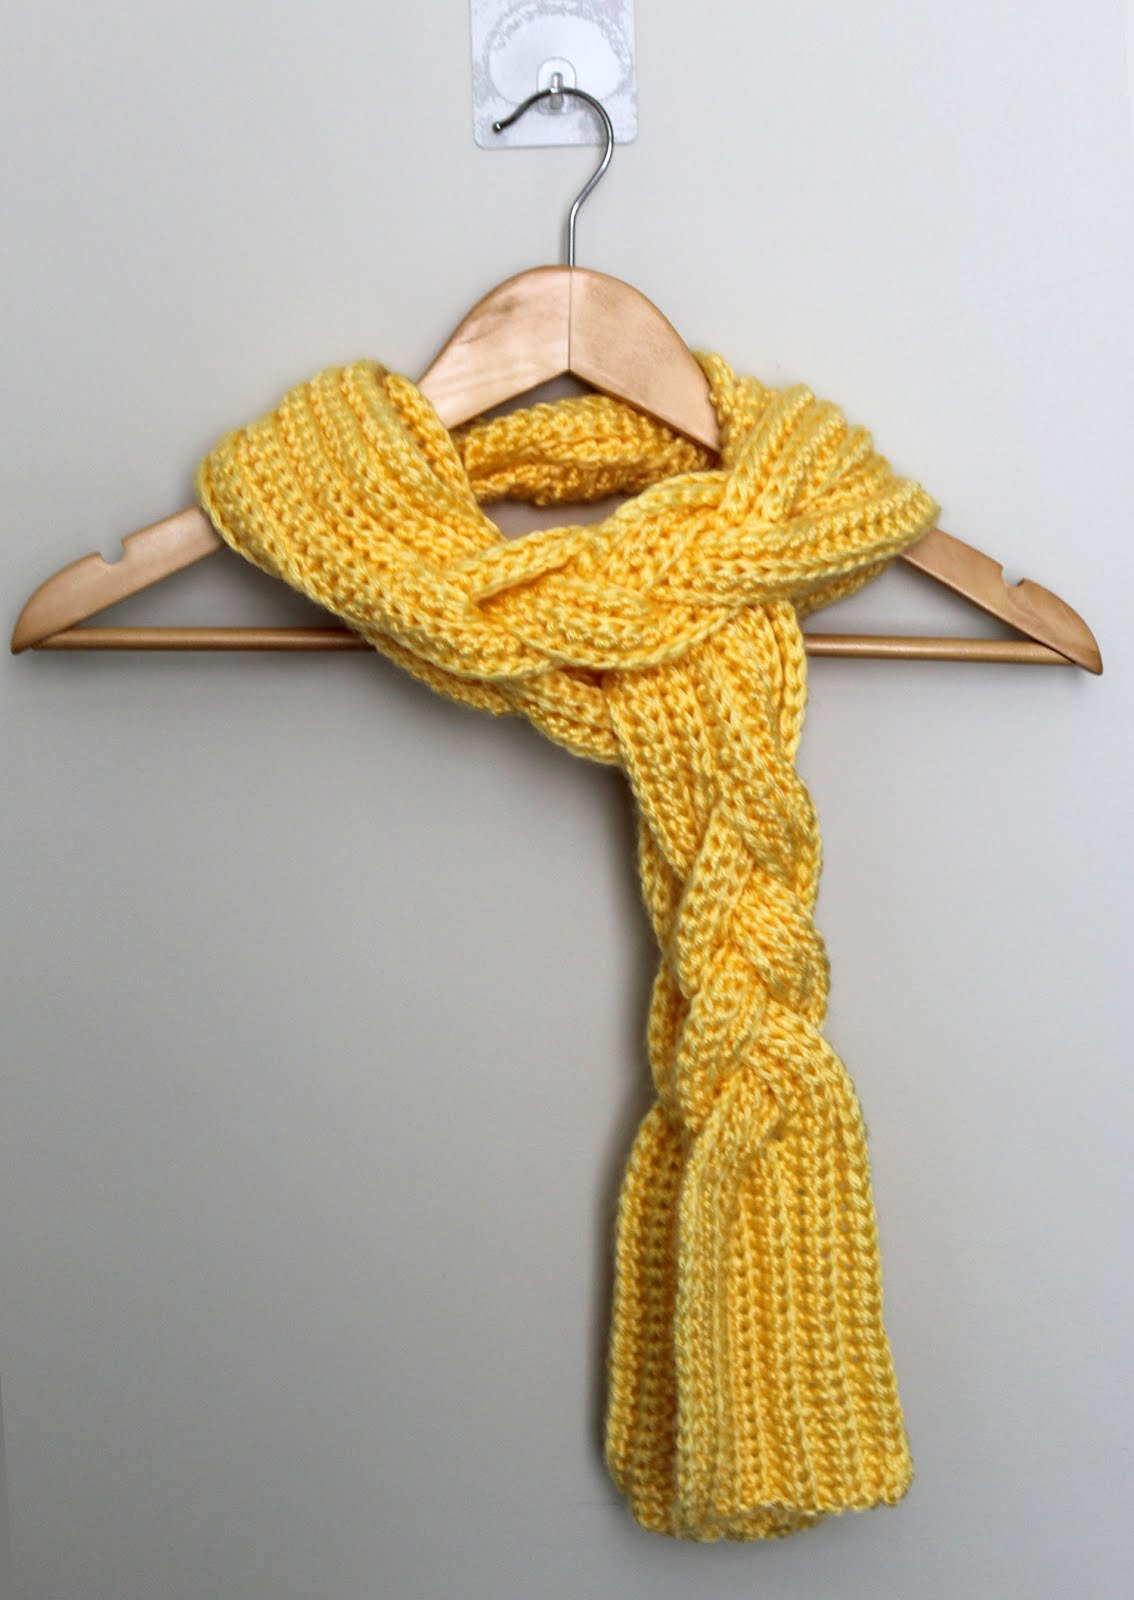 c31a0c0c562 Rapunzel s Braided Scarf Crochet Pattern - Once Upon a Cheerio